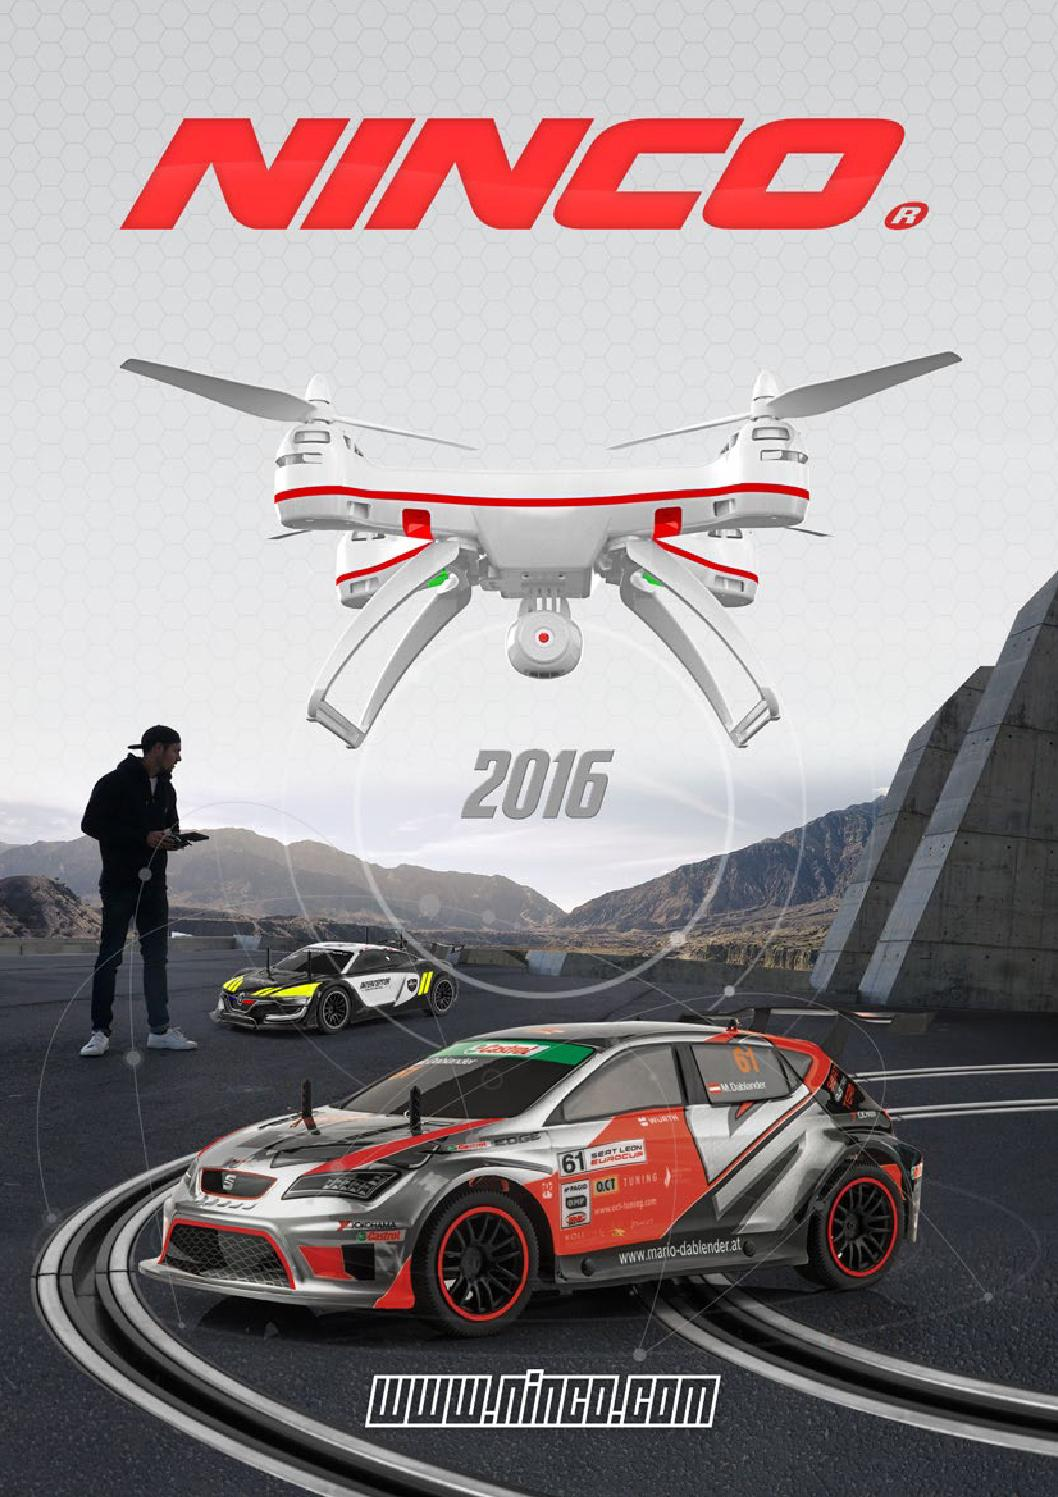 Ninco Catalog 2016 Eng By Official Issuu Tiny Rc Cars Transmitter And Charger Circuit 2 X Aa Cell 27mhz